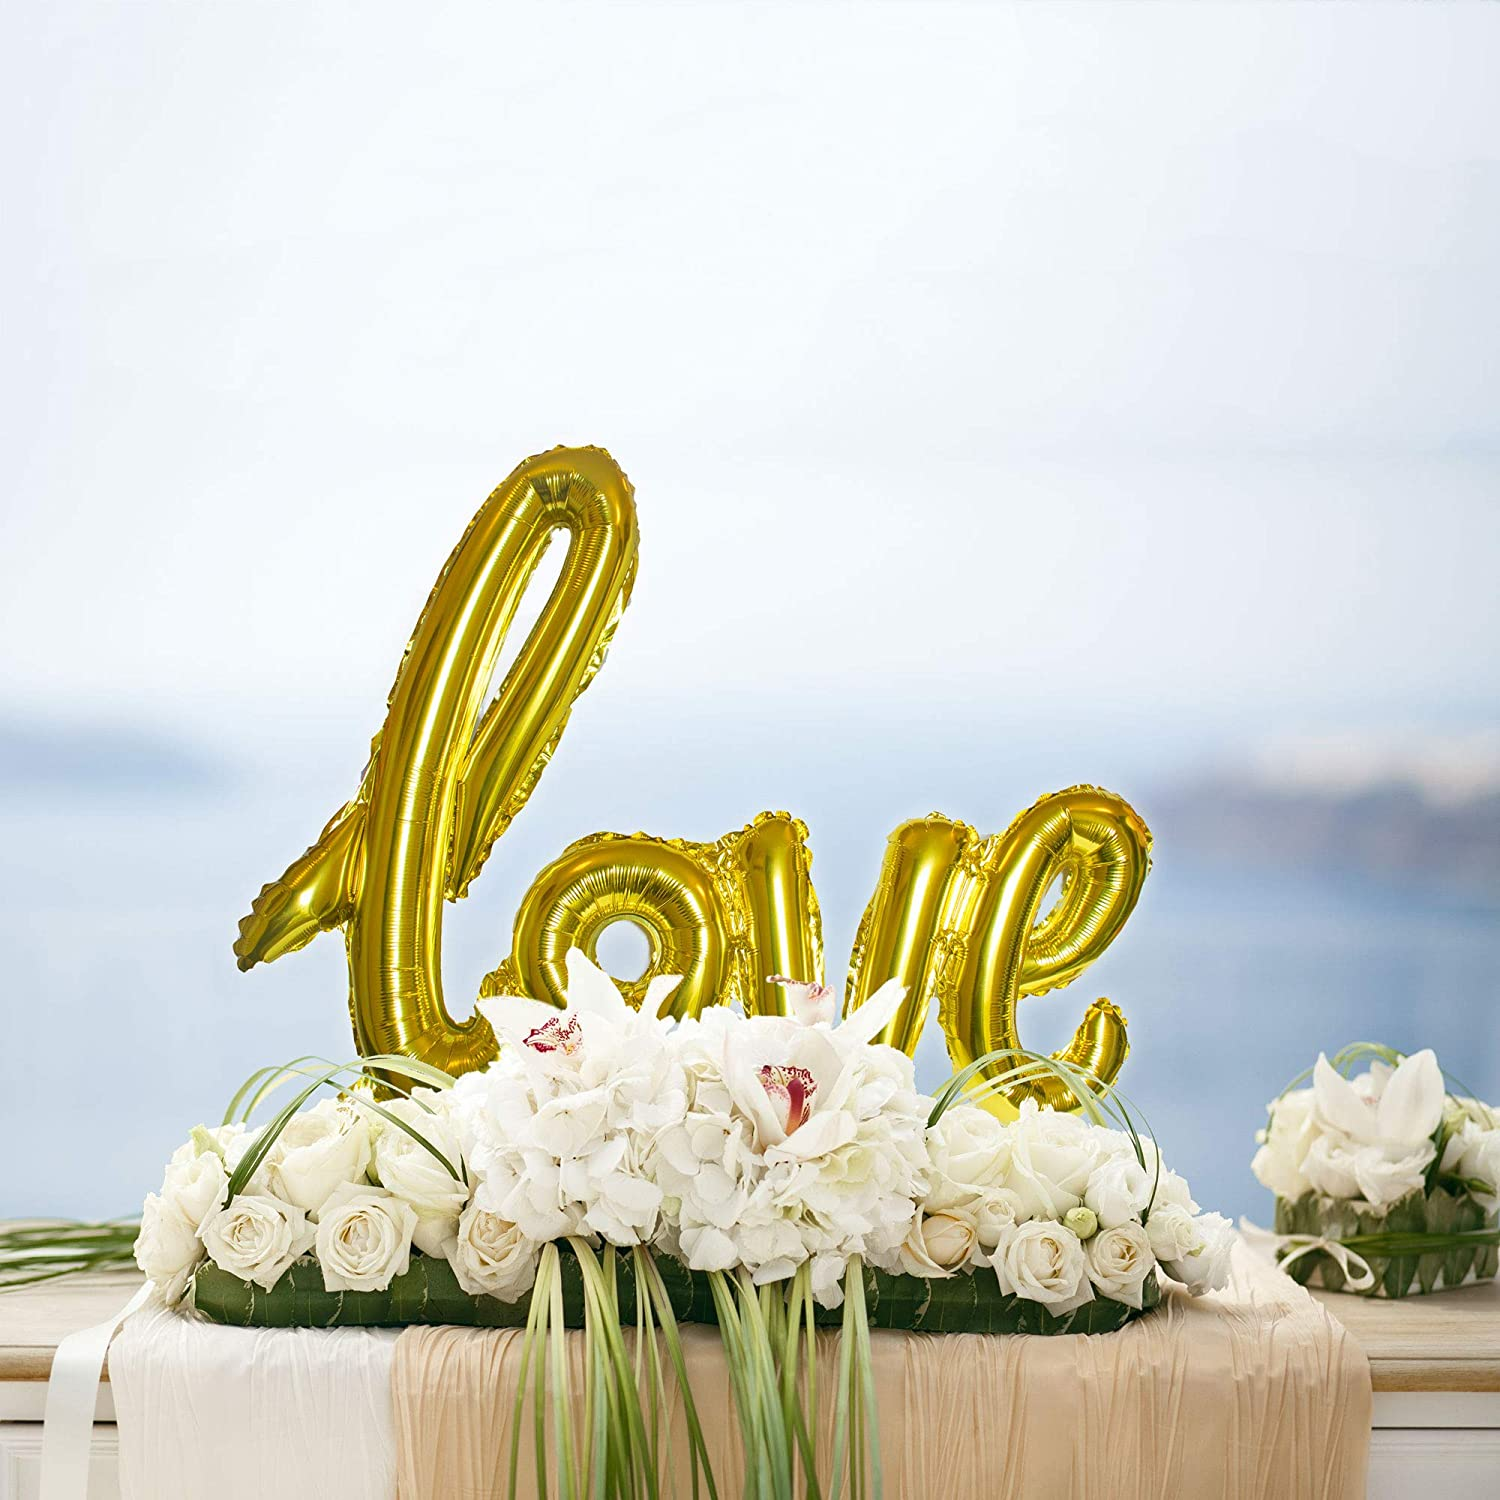 Bridal Shower or Birthday Marry Party Christmas Day Love Balloon Champagne Gold Letter Banner Writing Script Handwriting Decorations Valentines Wedding Romantic Gifts Balloon Anniversary Decor